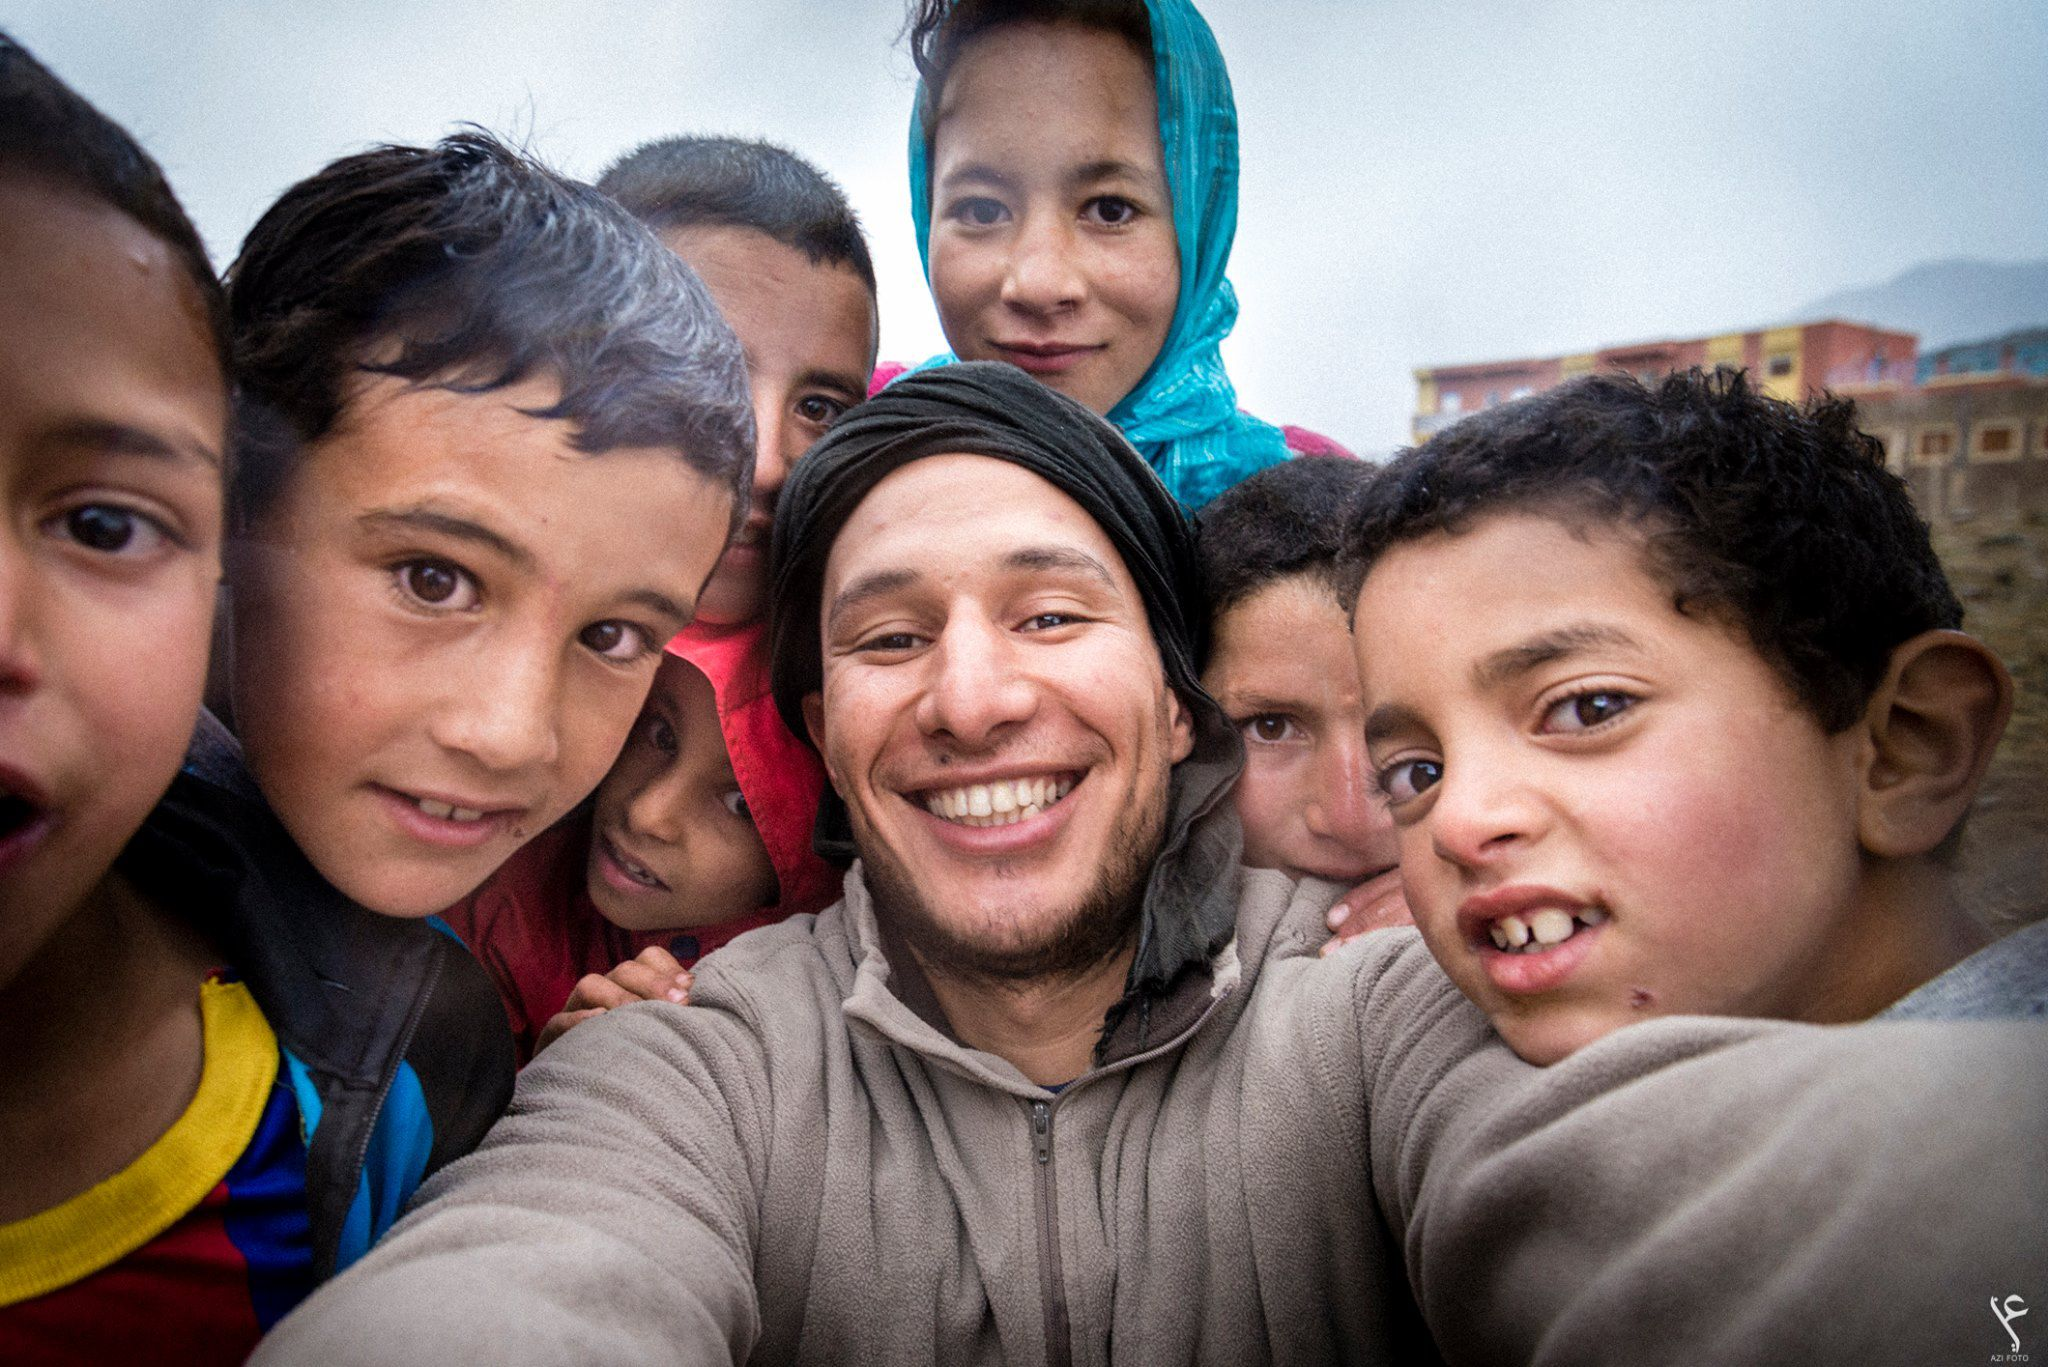 Abdellah Azizi with kids from Hight Atals mountins